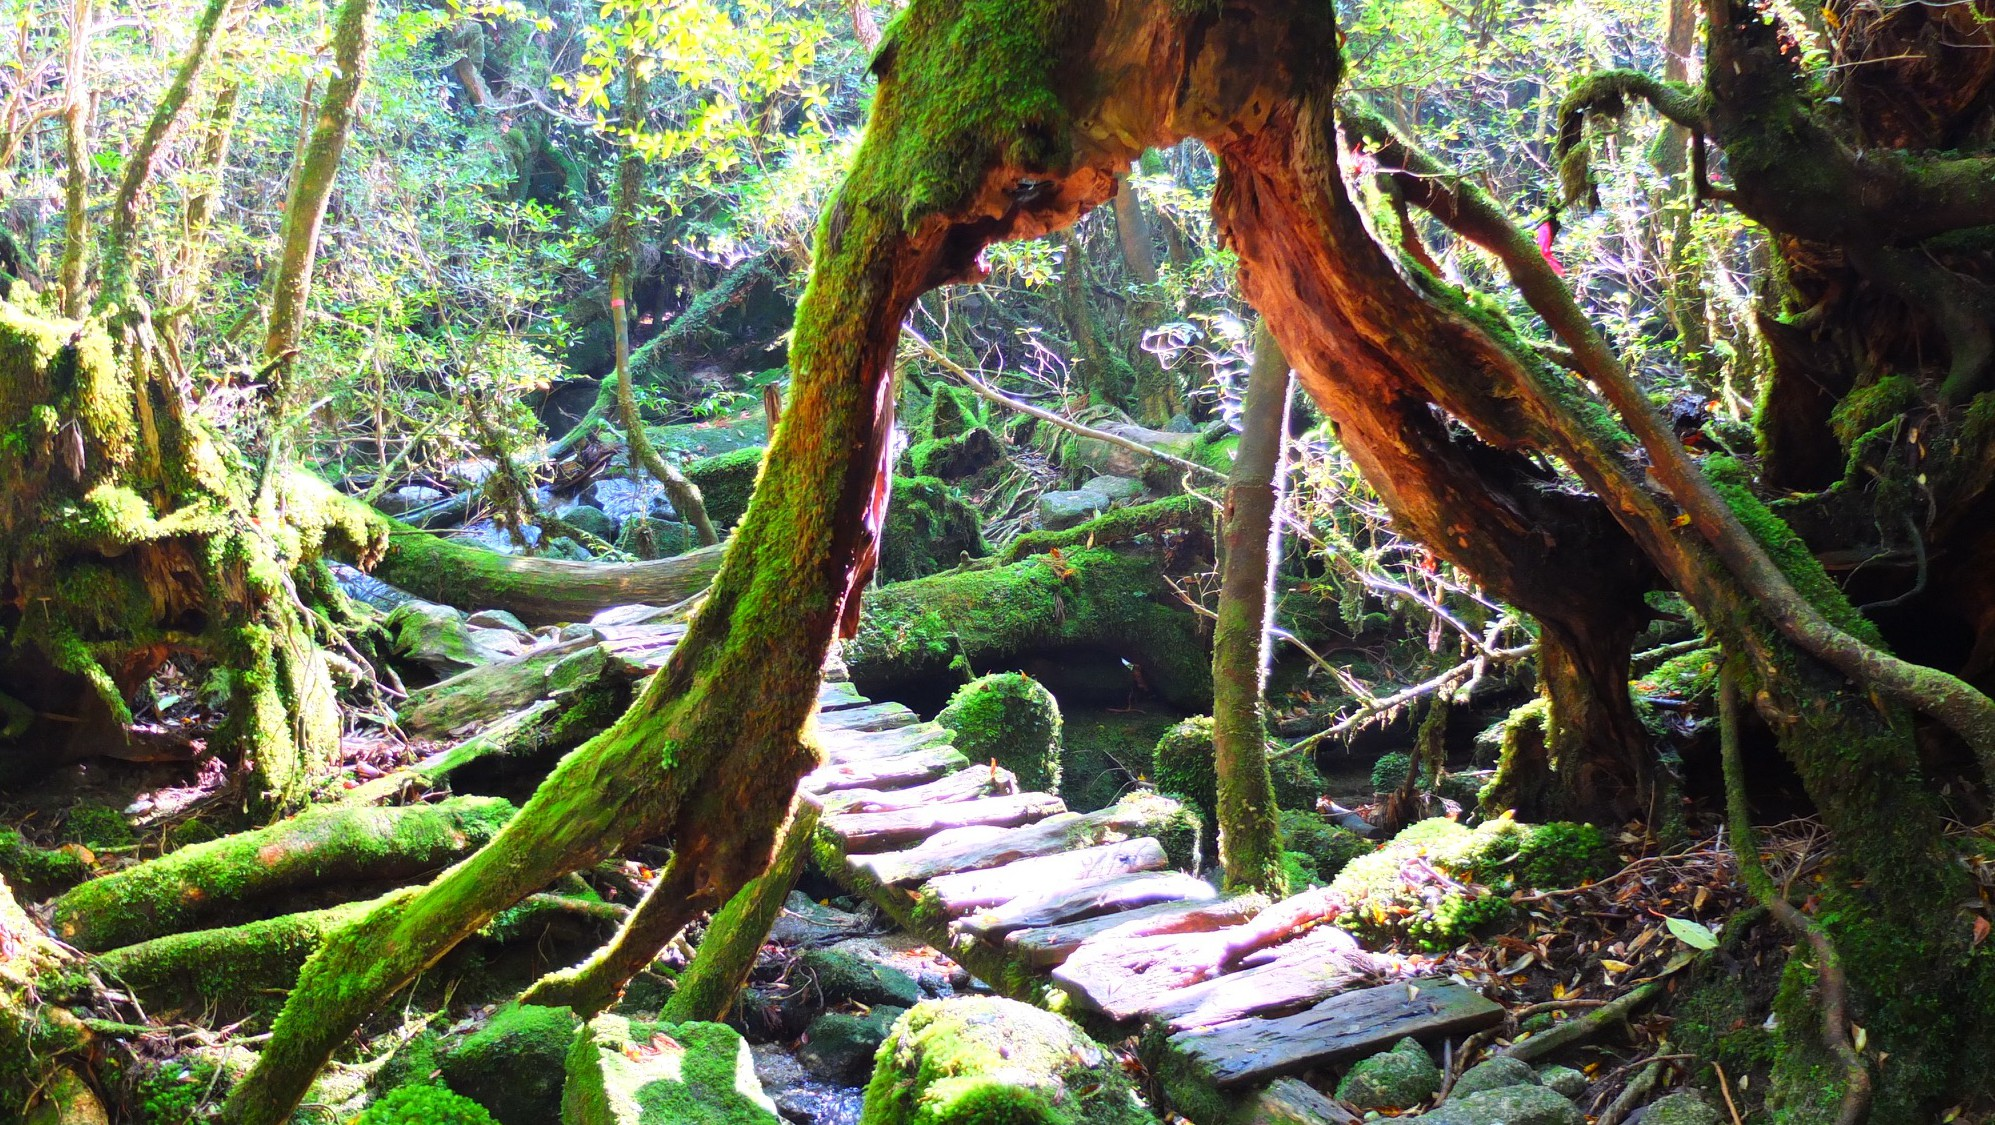 Shiratani Unsuikyo Nationalpark, Yakushima, Japan, Dominik Sommerer, Dominiks Welt